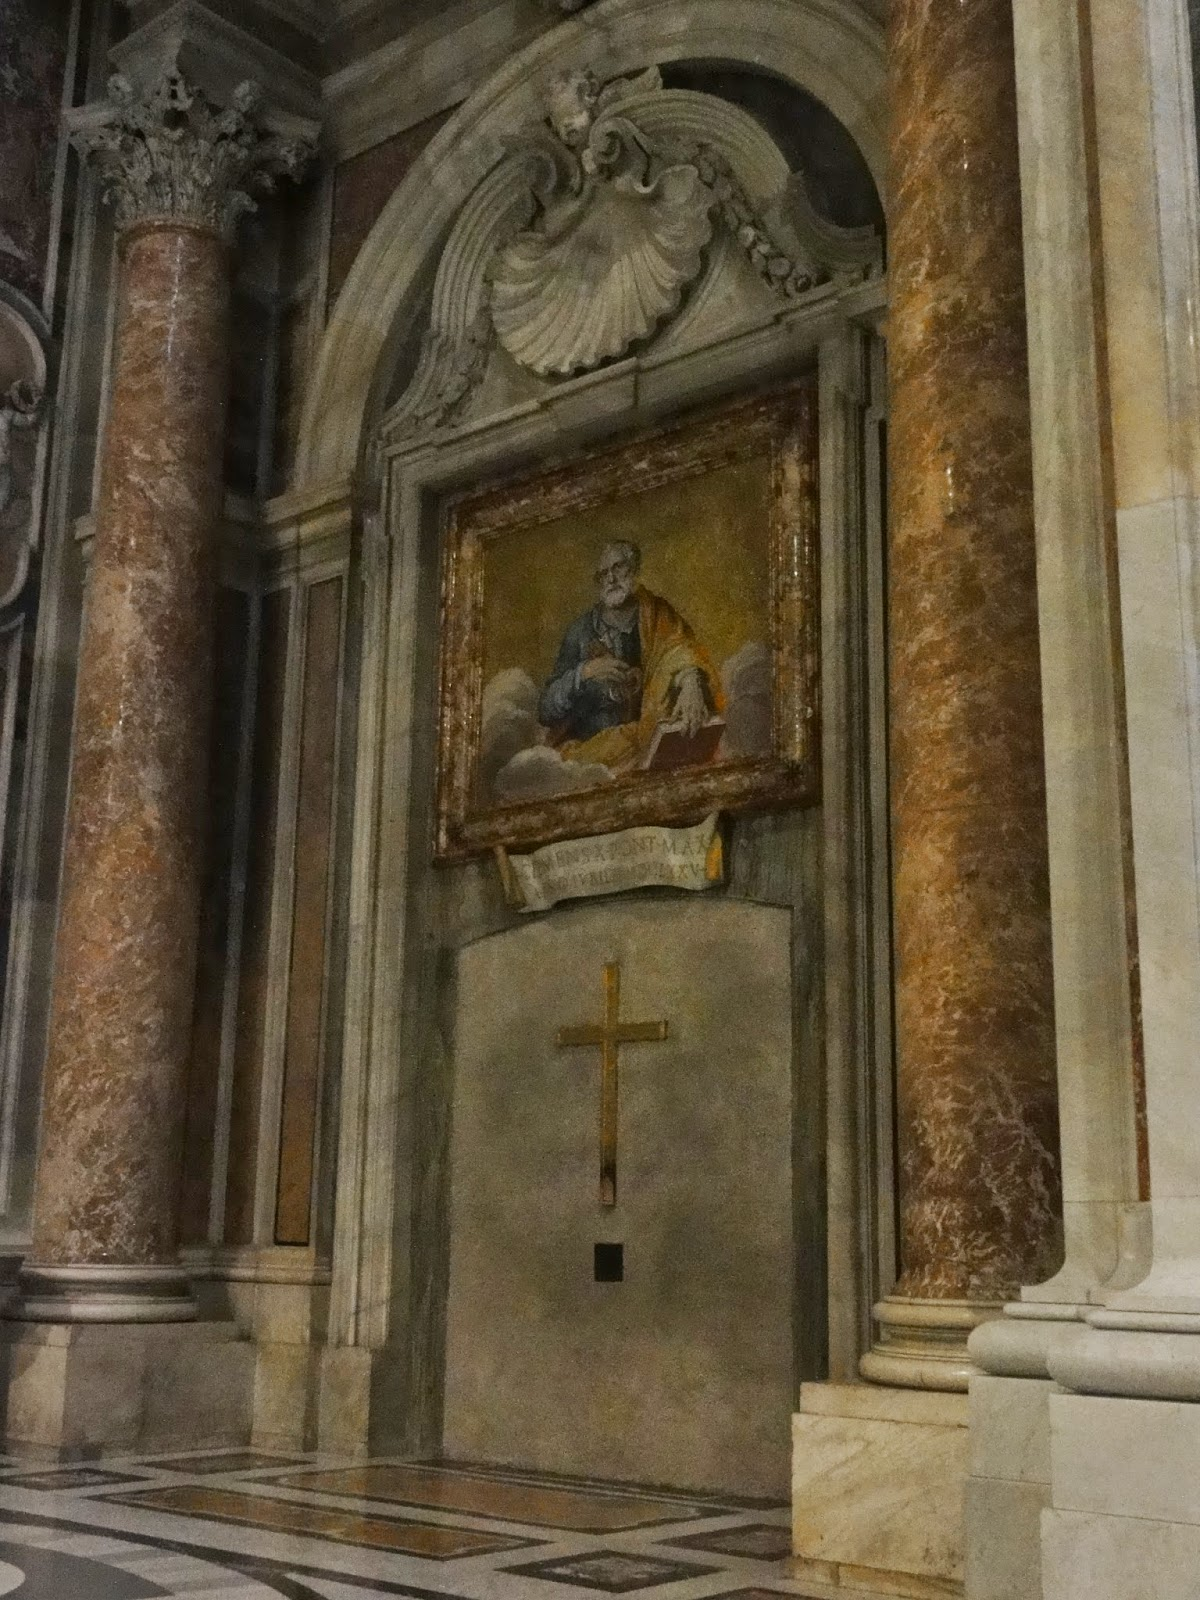 The sealed Holy Door at St. Peter's Basilica